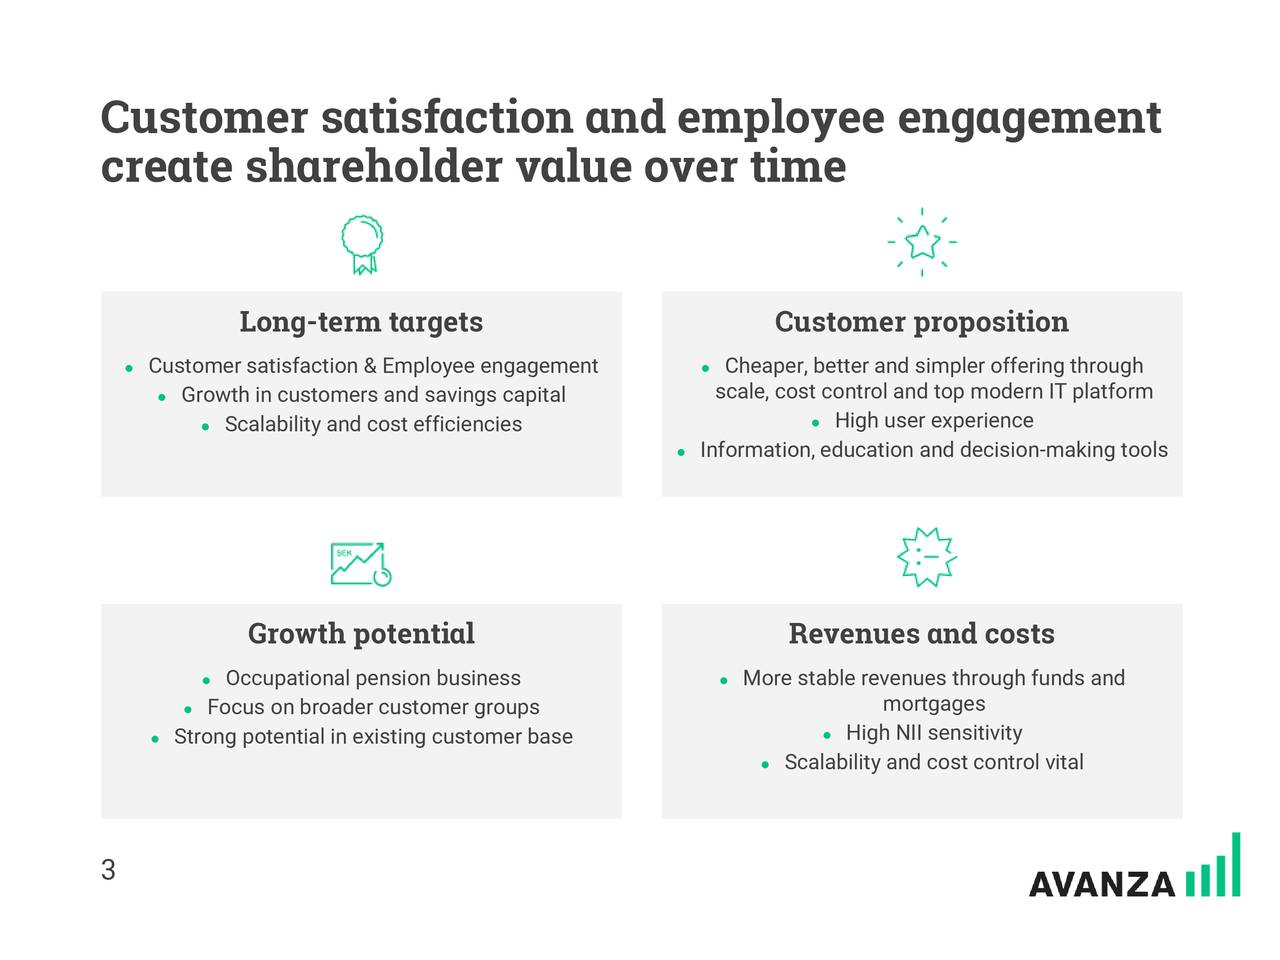 create shareholder value over time Long-term targets Customer proposition ● Customer satisfaction & Employee engagement ● Cheaper, better and simpler offering through ● Growth in customers and savings capital scale, cost control and top modern IT platform ● Scalability and cost efficiencies ● High user experience ● Information, education and decision-making tools Growth potential Revenues and costs ● Occupational pension business ● More stable revenues through funds and ● Focus on broader customer groups mortgages ● Strong potential in existing customer base ● High NII sensitivity ● Scalability and cost control vital 3